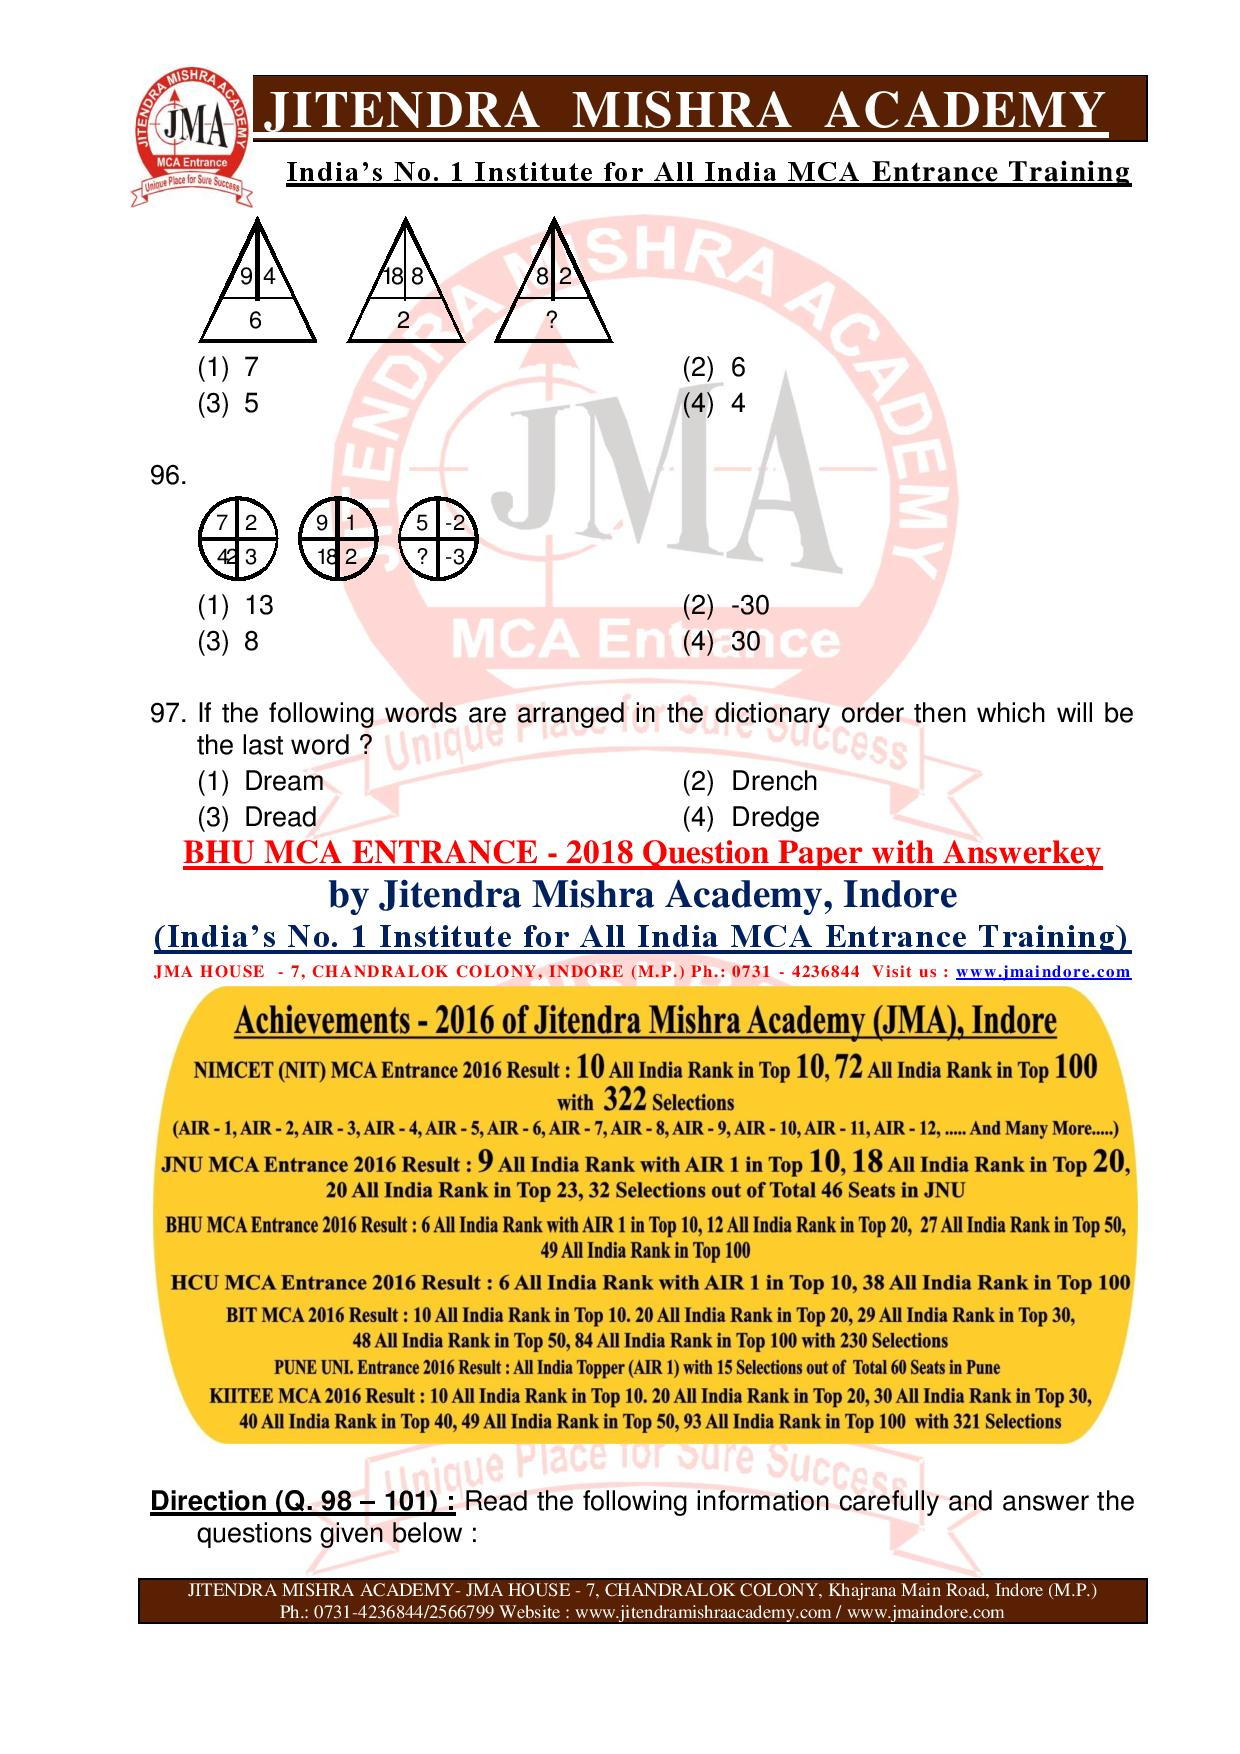 BHU MCA 2018 QUESTION PAPER12-page-030